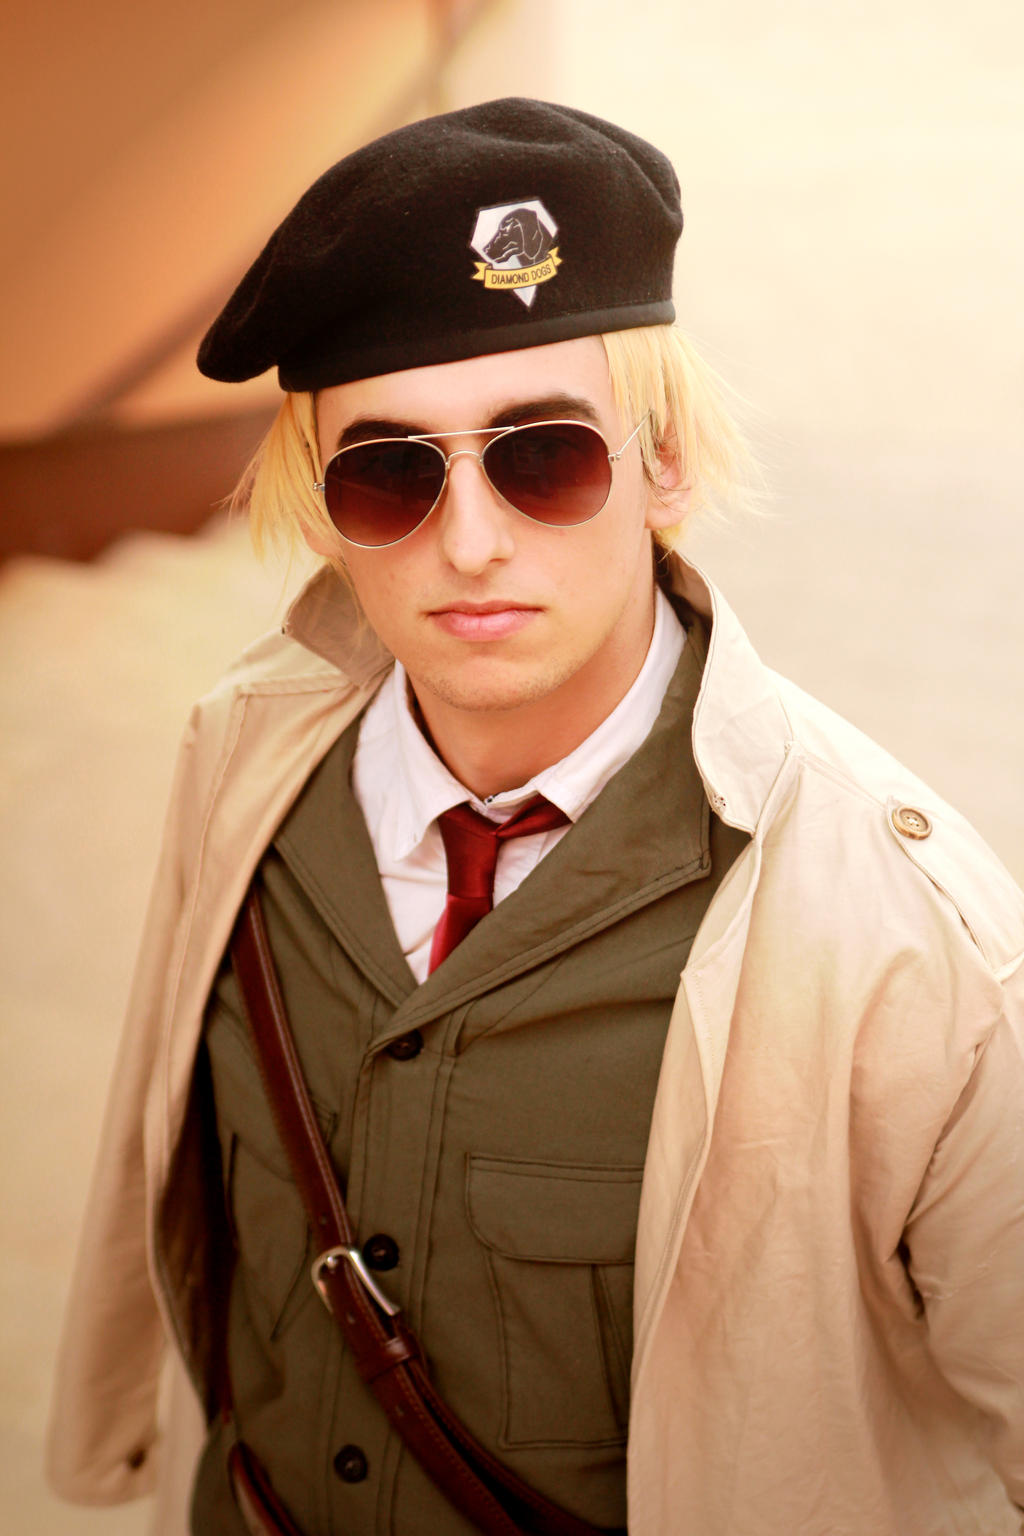 Kazuhira Miller Cosplay Mgs The Phantom Pain By Duxdante On Deviantart Worldcosplay is a free website for submitting cosplay photos and is used by cosplayers in countries all around the world. kazuhira miller cosplay mgs the